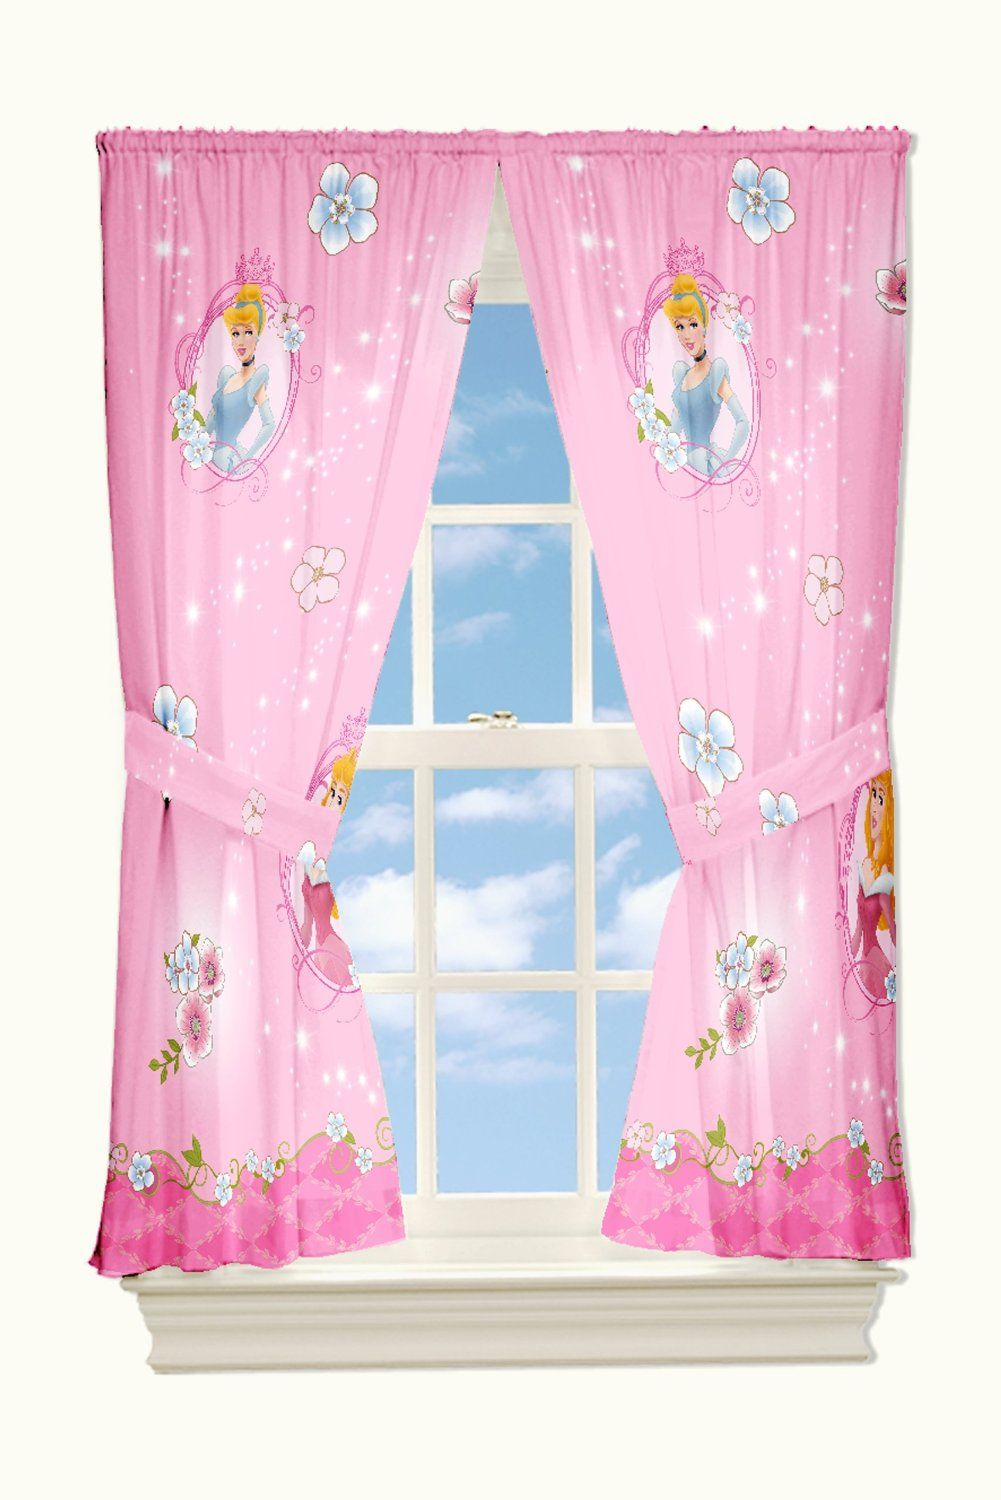 Perfect Sweet Pink Bedroom Curtains For Girls Bedroom Accessories : Lovely Disney  Dainty Princess Pink Bedroom Curtain